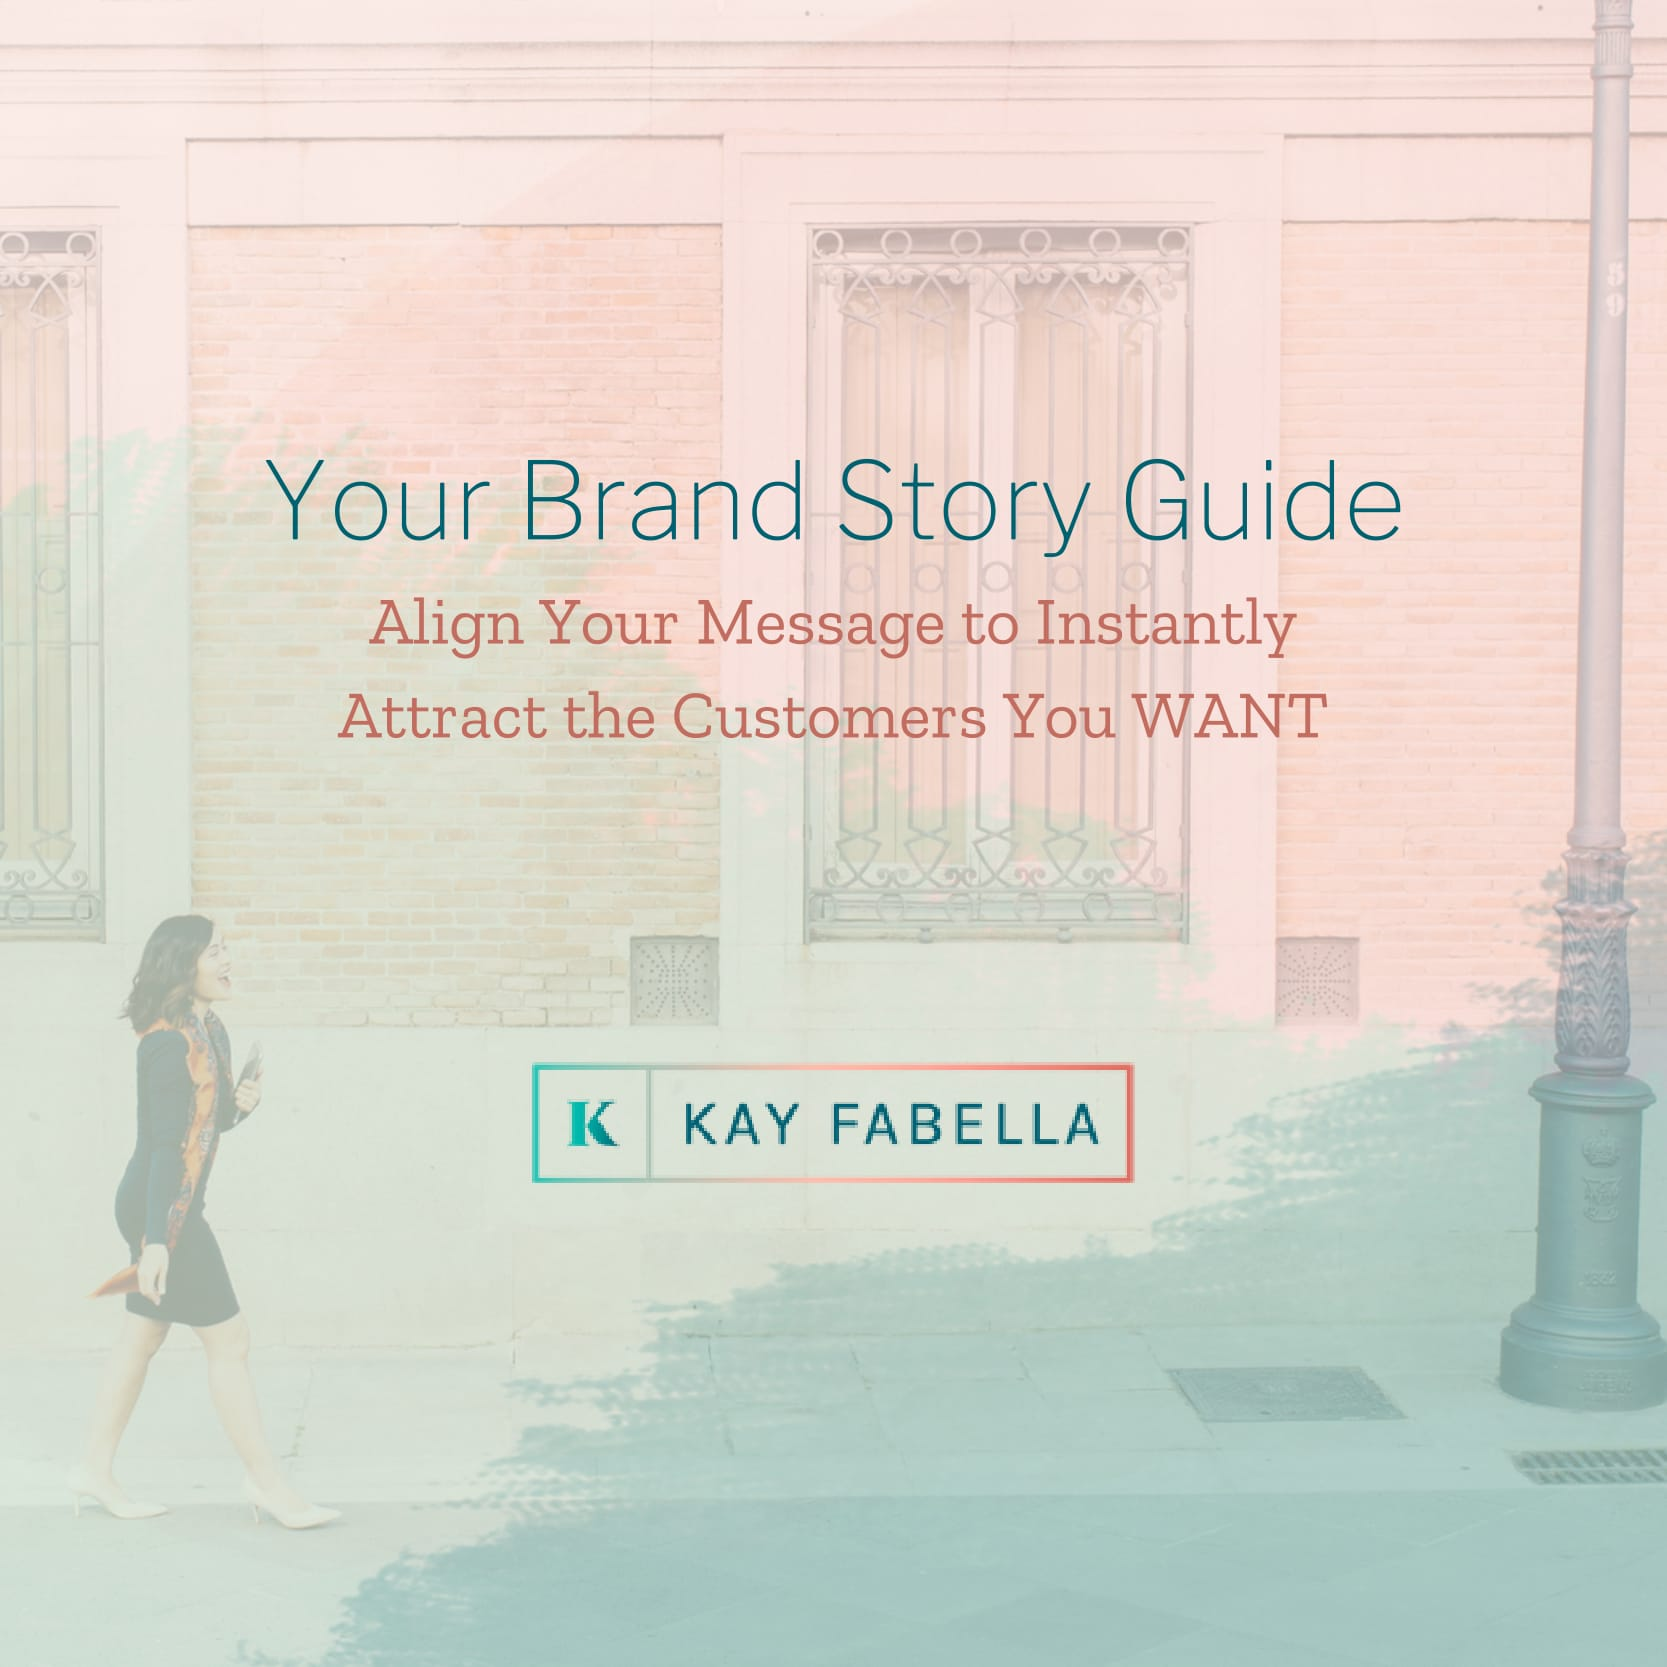 YOUR BRAND STORY GUIDE FROM KAY FABELLA